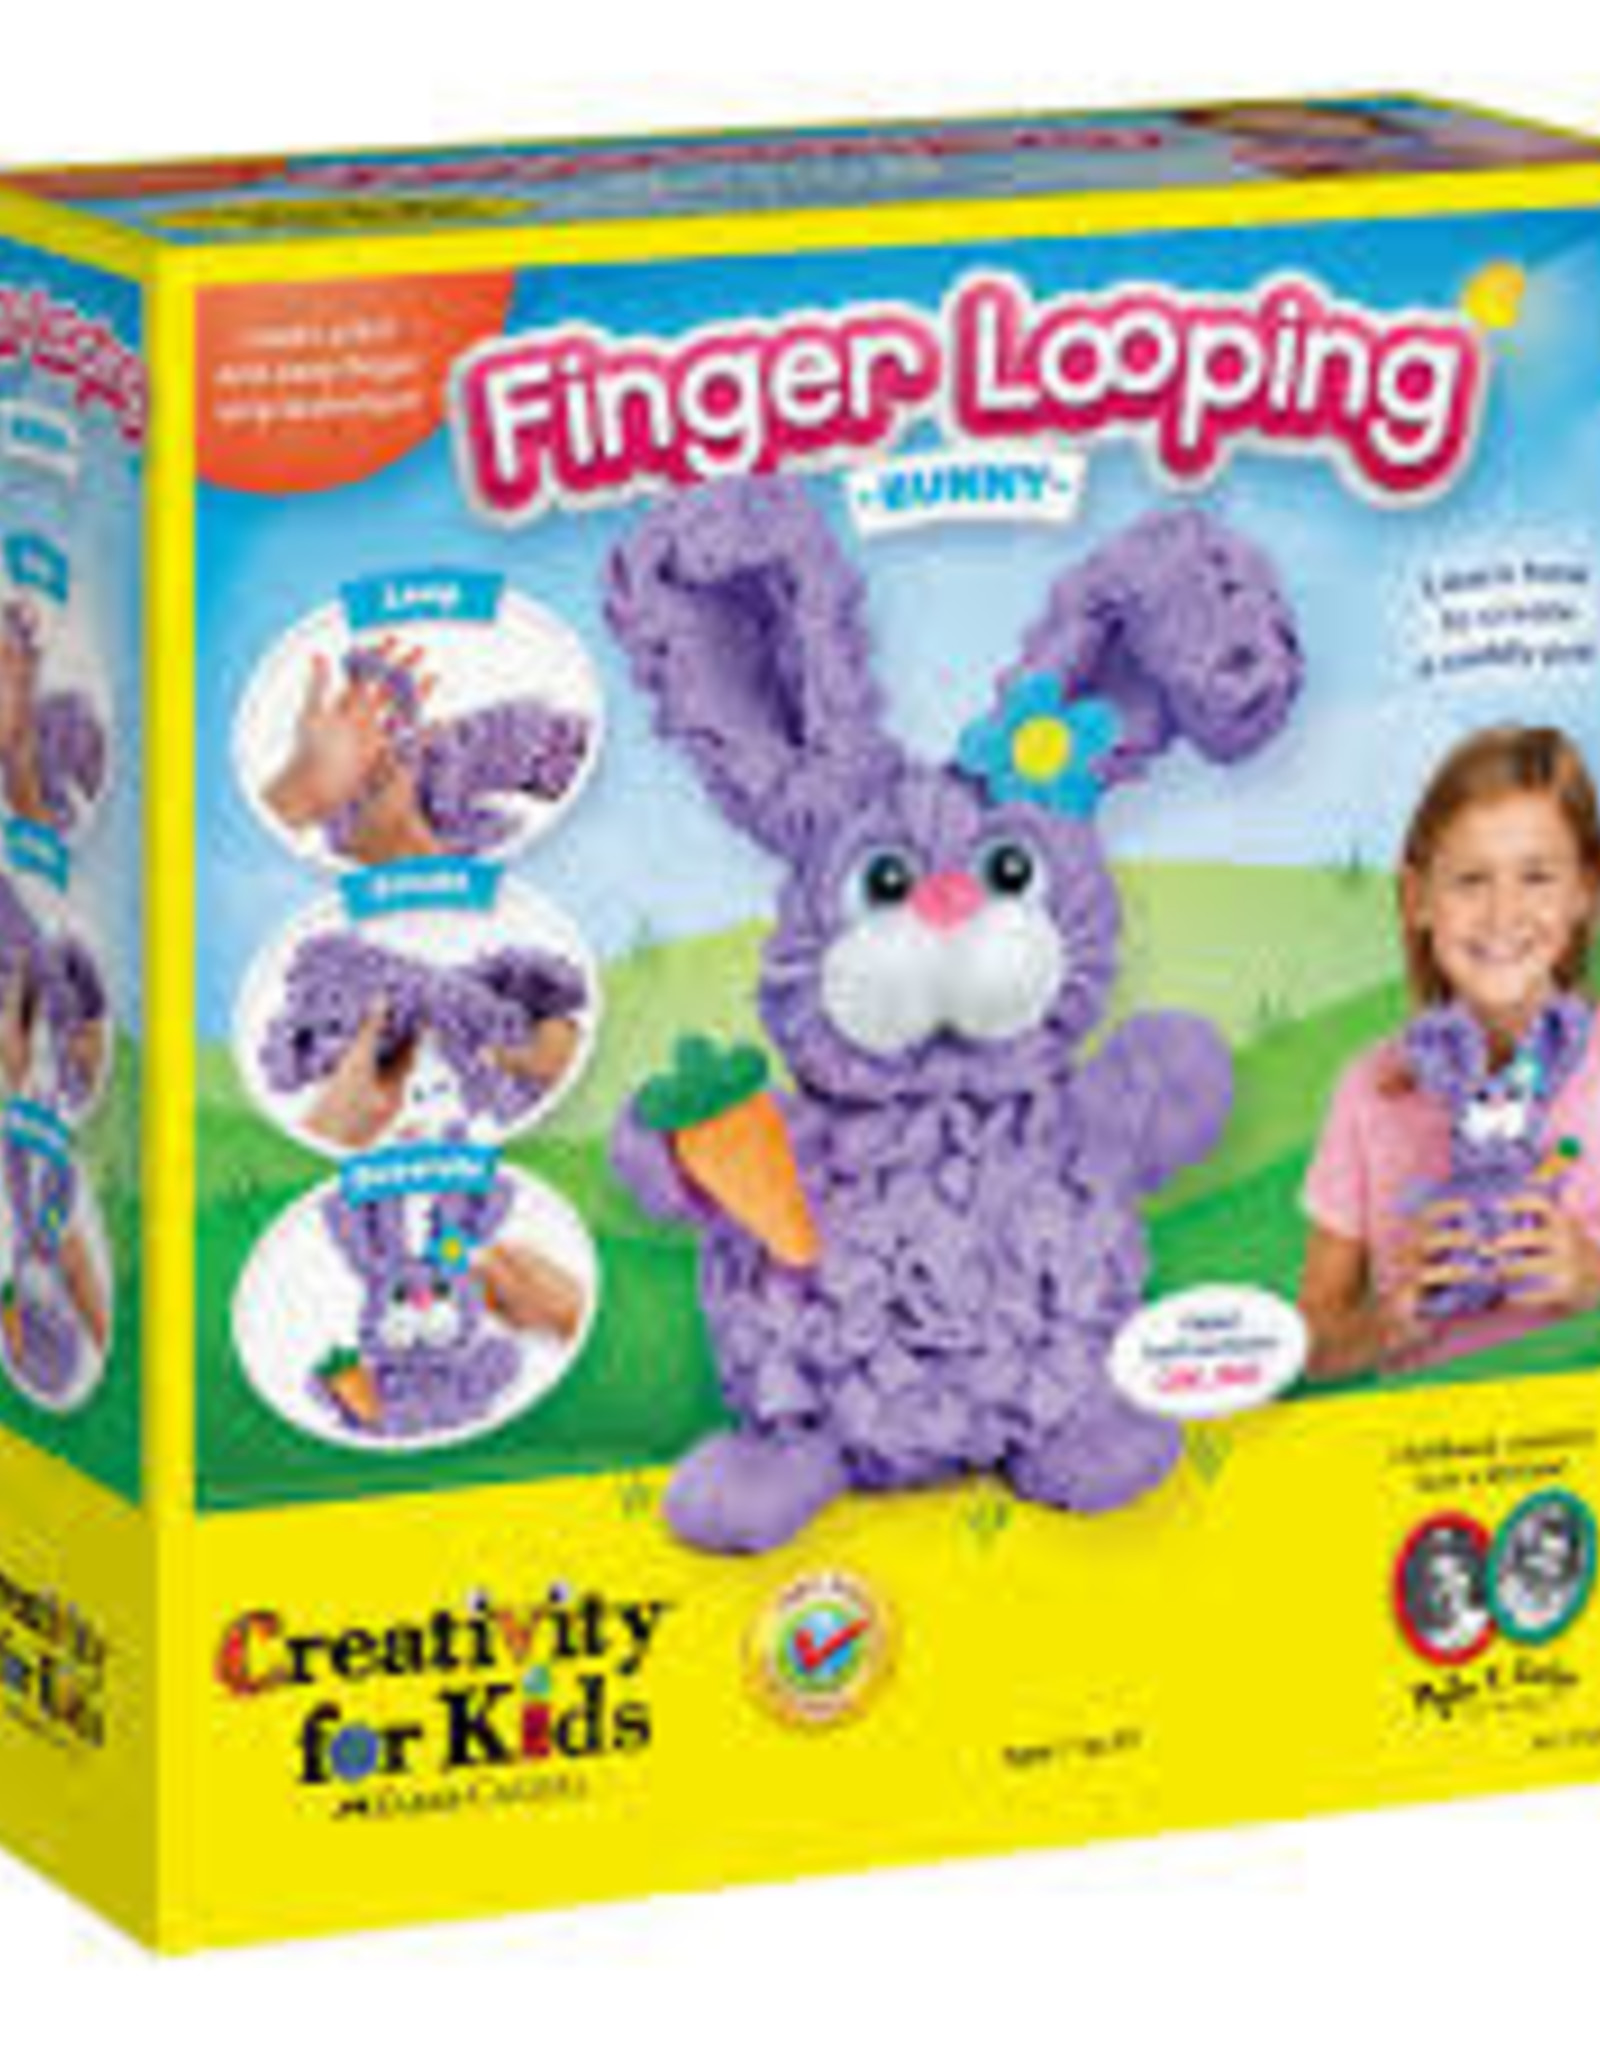 Creativity For Kids Finger Looping Bunny